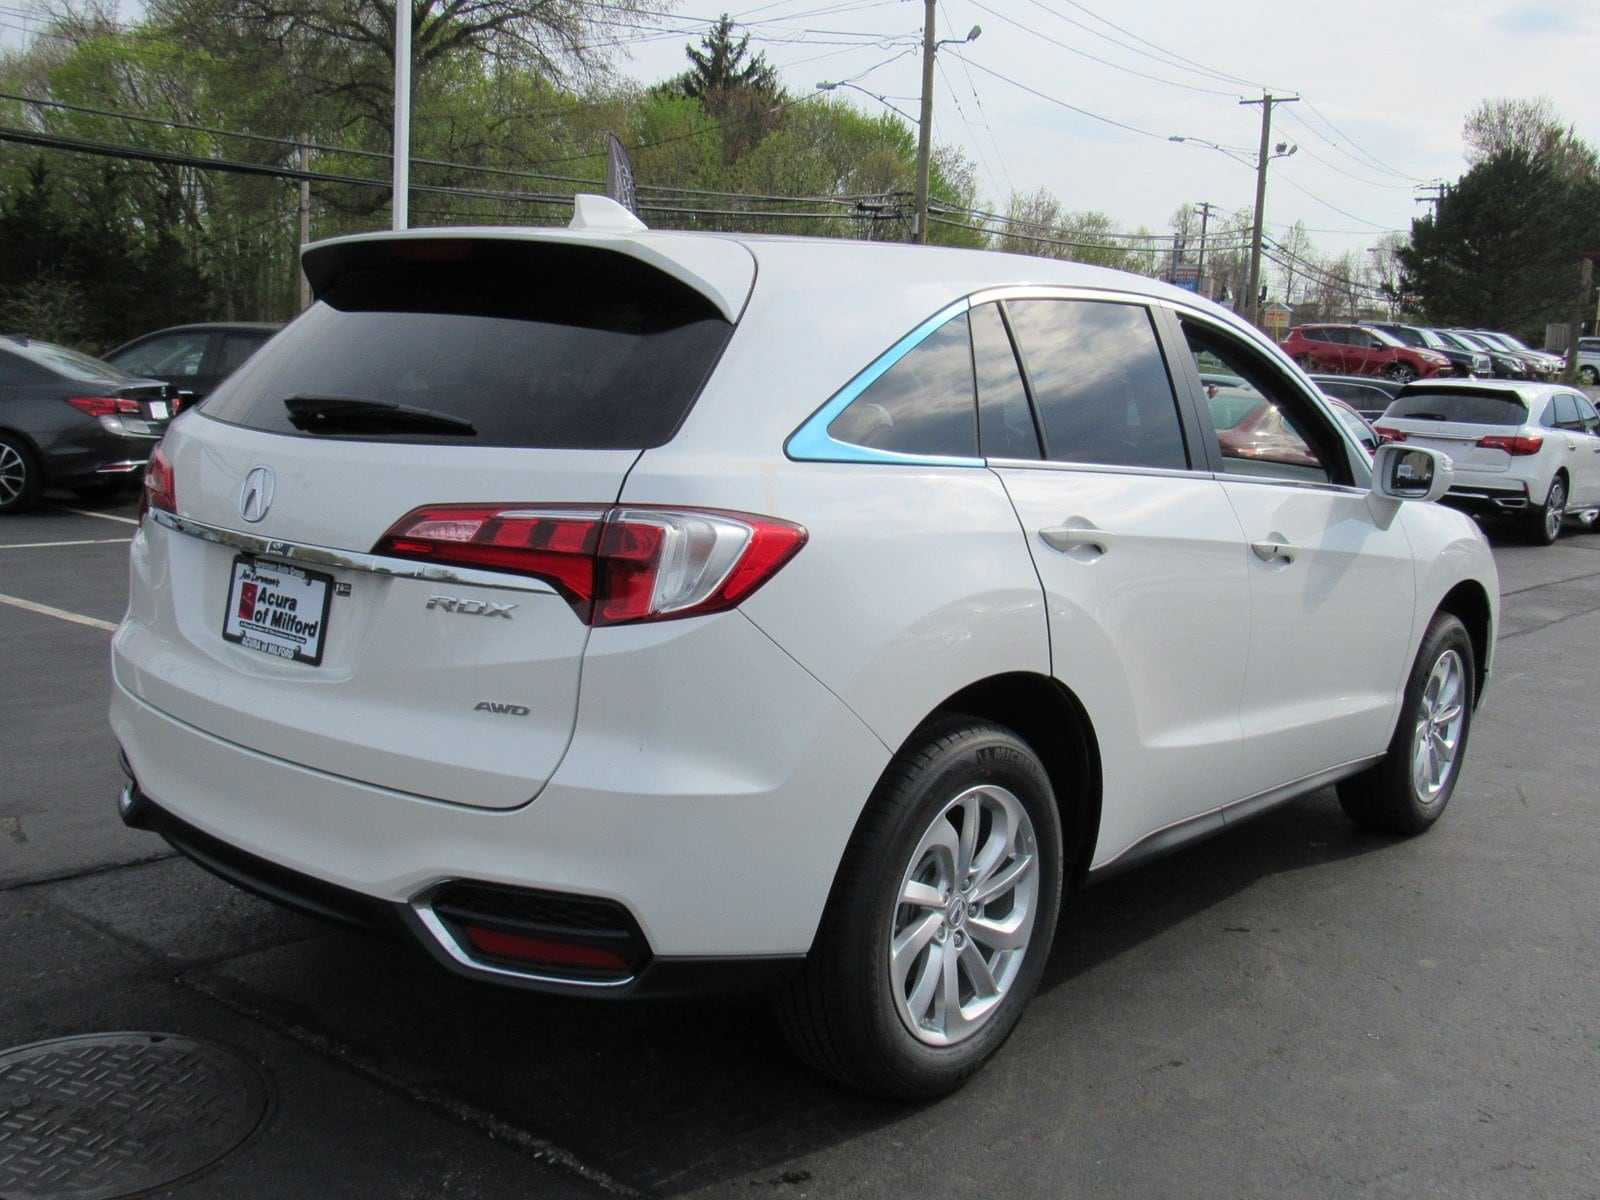 test acura review driving rdx suv road reviews